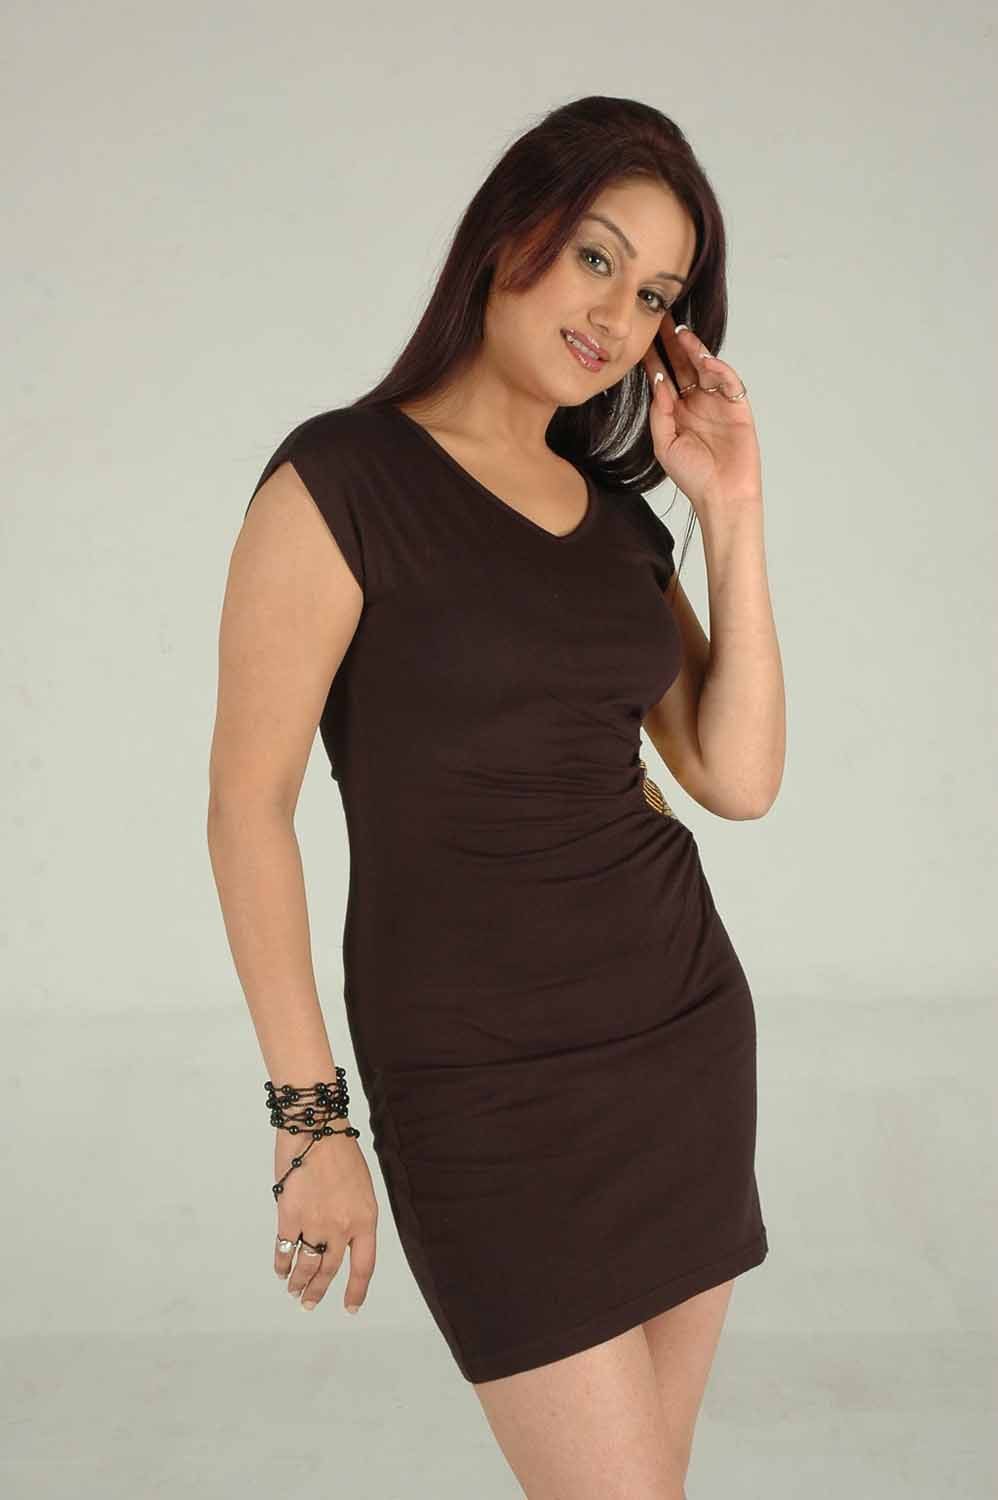 Sonia Agarwal spicy photos